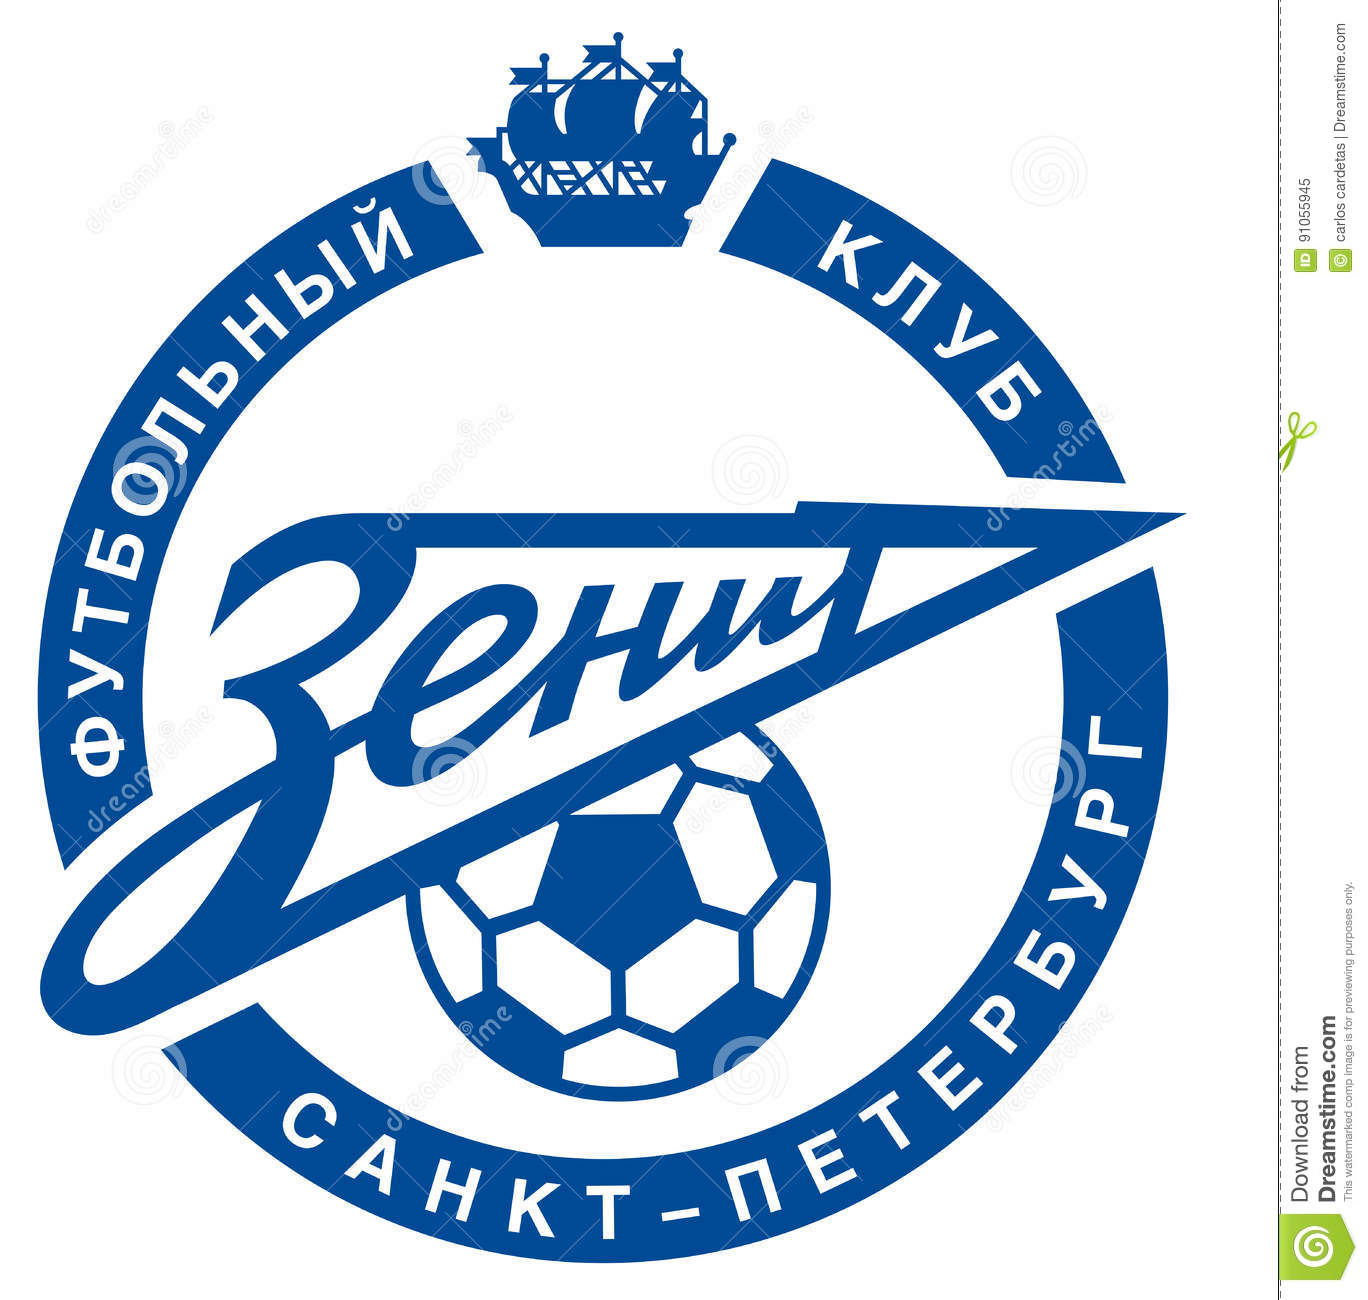 Fc Zenit Saint Petersburg Logo Editorial Image Illustration Of Club Champions 91055945